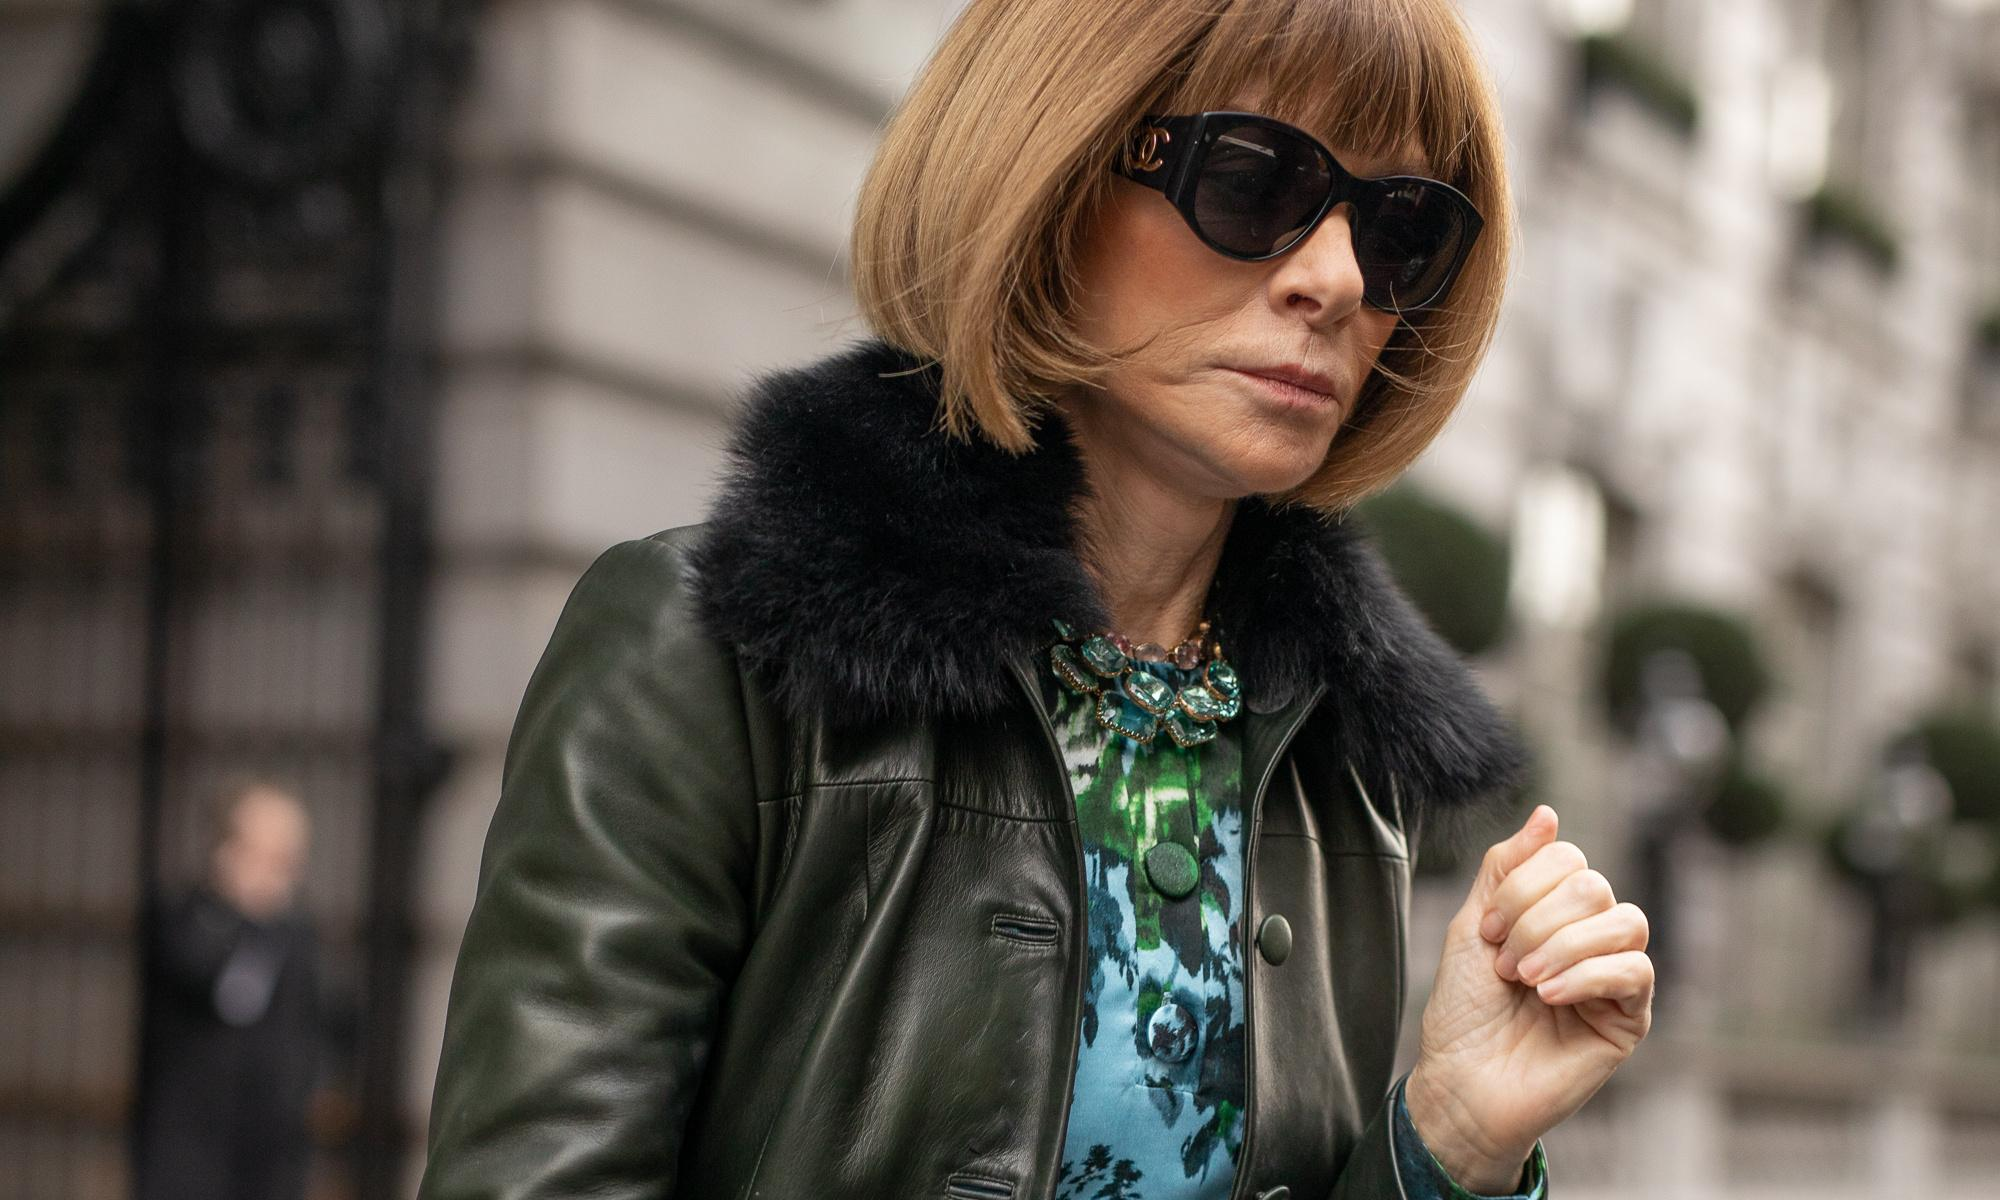 From Anna Wintour nails to black mascara: this week's fashion trends